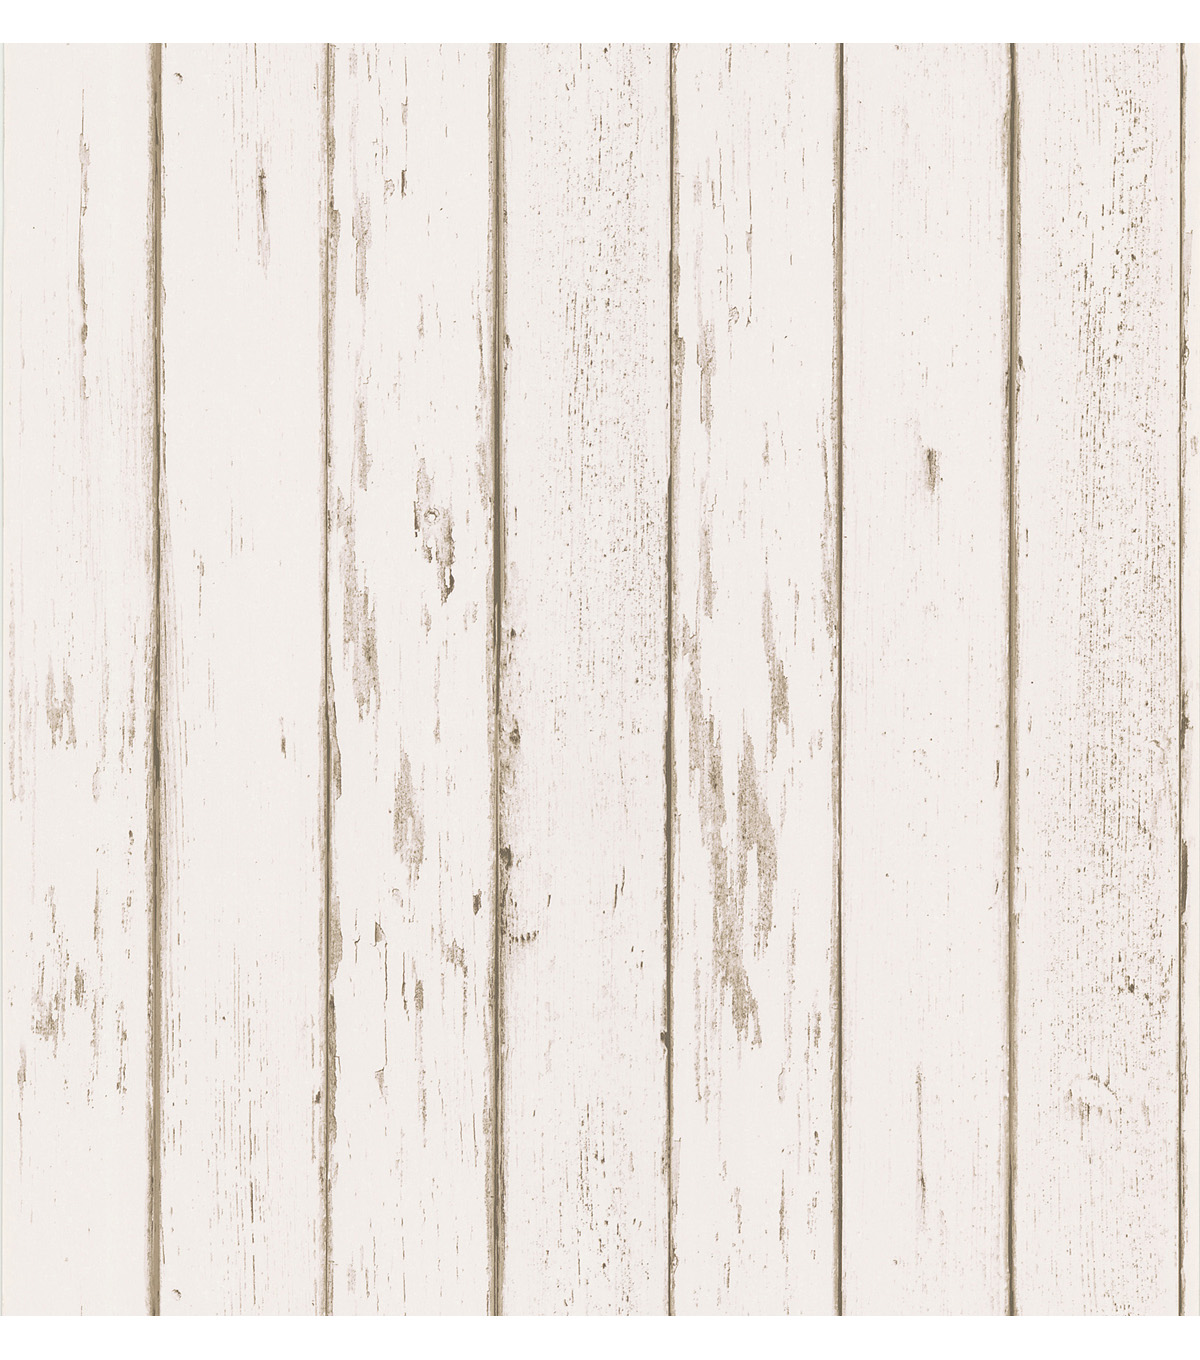 Yarmouth Cream Rustic Wood Paneling Wallpaper